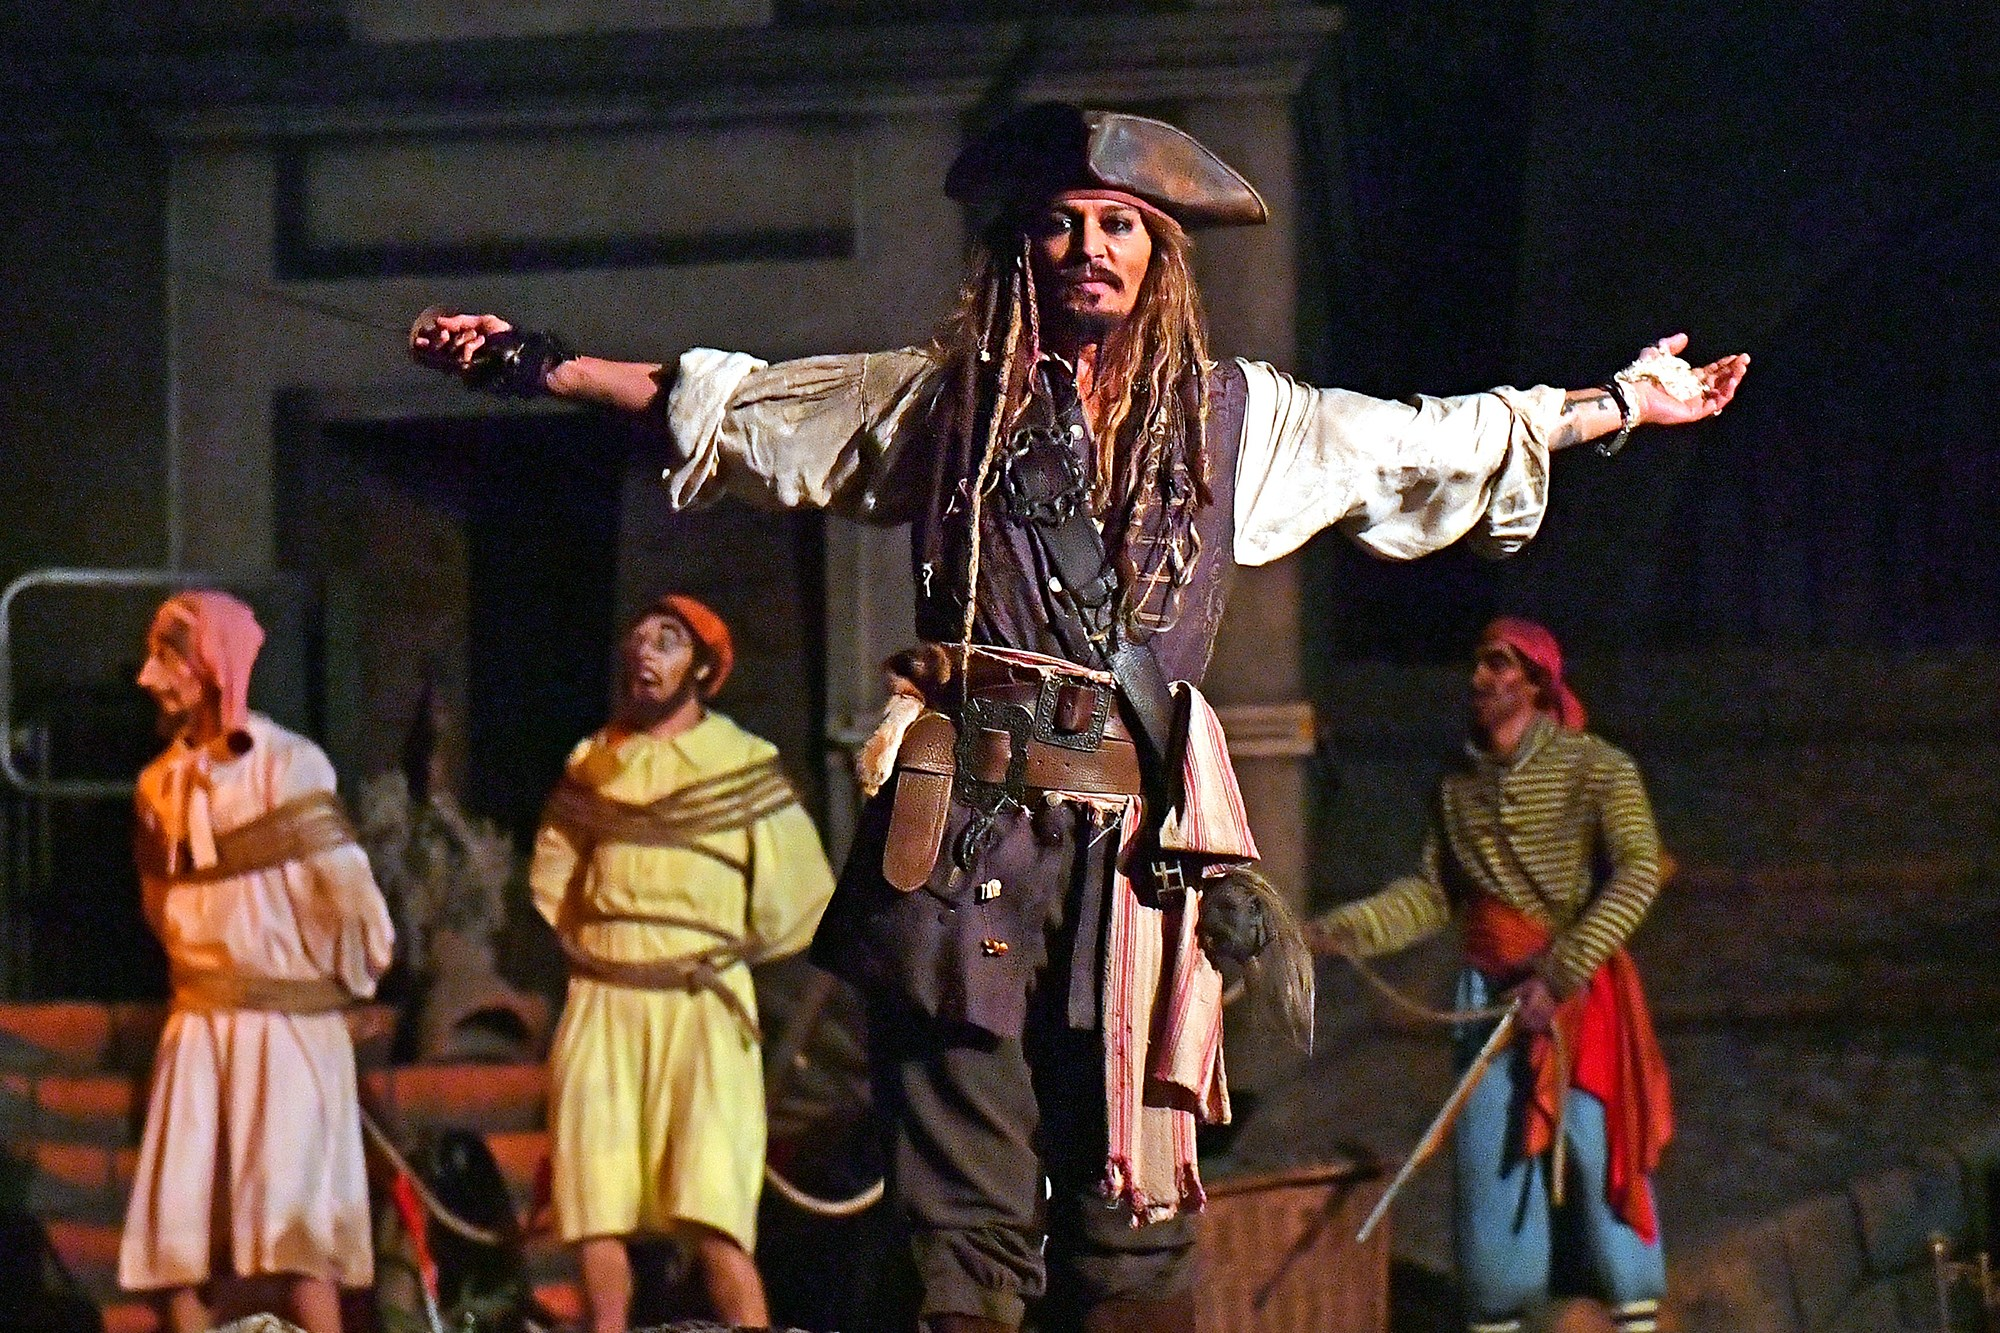 """EXCLUSIVE: ActorJohnny Depp stunned fans on the Pirates of the Caribbean ride at Disneyland last night (wed) - by making a surprise appearance dressed as Captain Jack Sparrow. The legendary actor wore his trademark Pirate outfit as he shocked delighted theme park guests as they sailed past him in boats. One onlooker told E! News: """"Everyone was surprised, shocked and excited to see him. He acted exactly like his character in the movies. Johnny could be heard speaking in his trademark Jack Sparrow accent and waving a sword as visitors to the resort in Anaheim, CA, laughed and looked on. The star's appearance came as he gets ready to appear in the fifth installment of the blockbuster franchise: 'Pirates of the Caribbean: Dead Men Tell No Tales'. 26 Apr 2017 Pictured: Johnny Depp. Photo credit: Snorlax / MEGA TheMegaAgency.com +1 888 505 6342"""